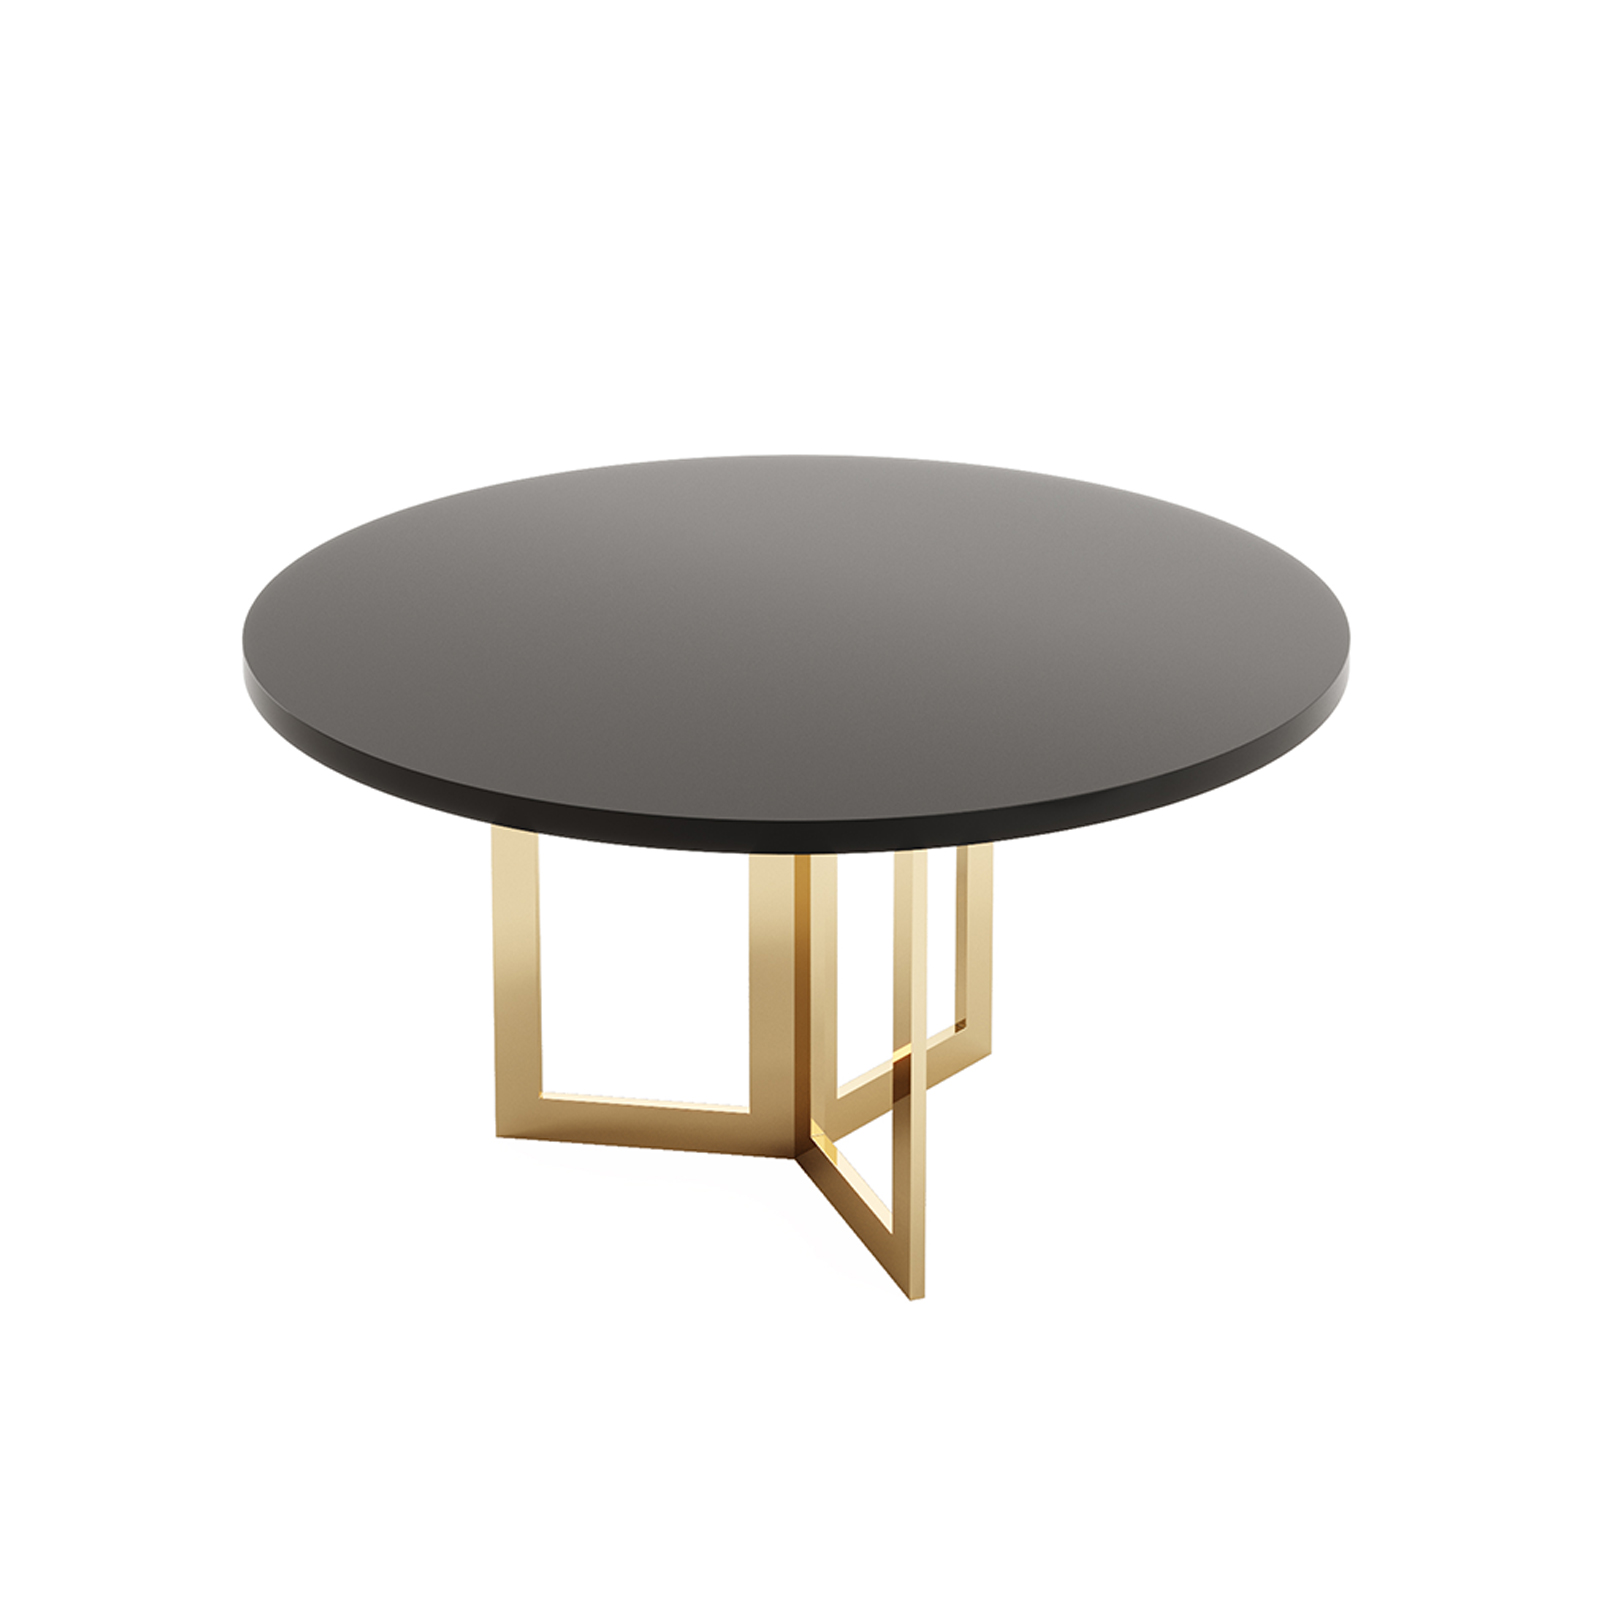 Avery-Dining-Table-Gold-by-Bonham-&-Bonham-03